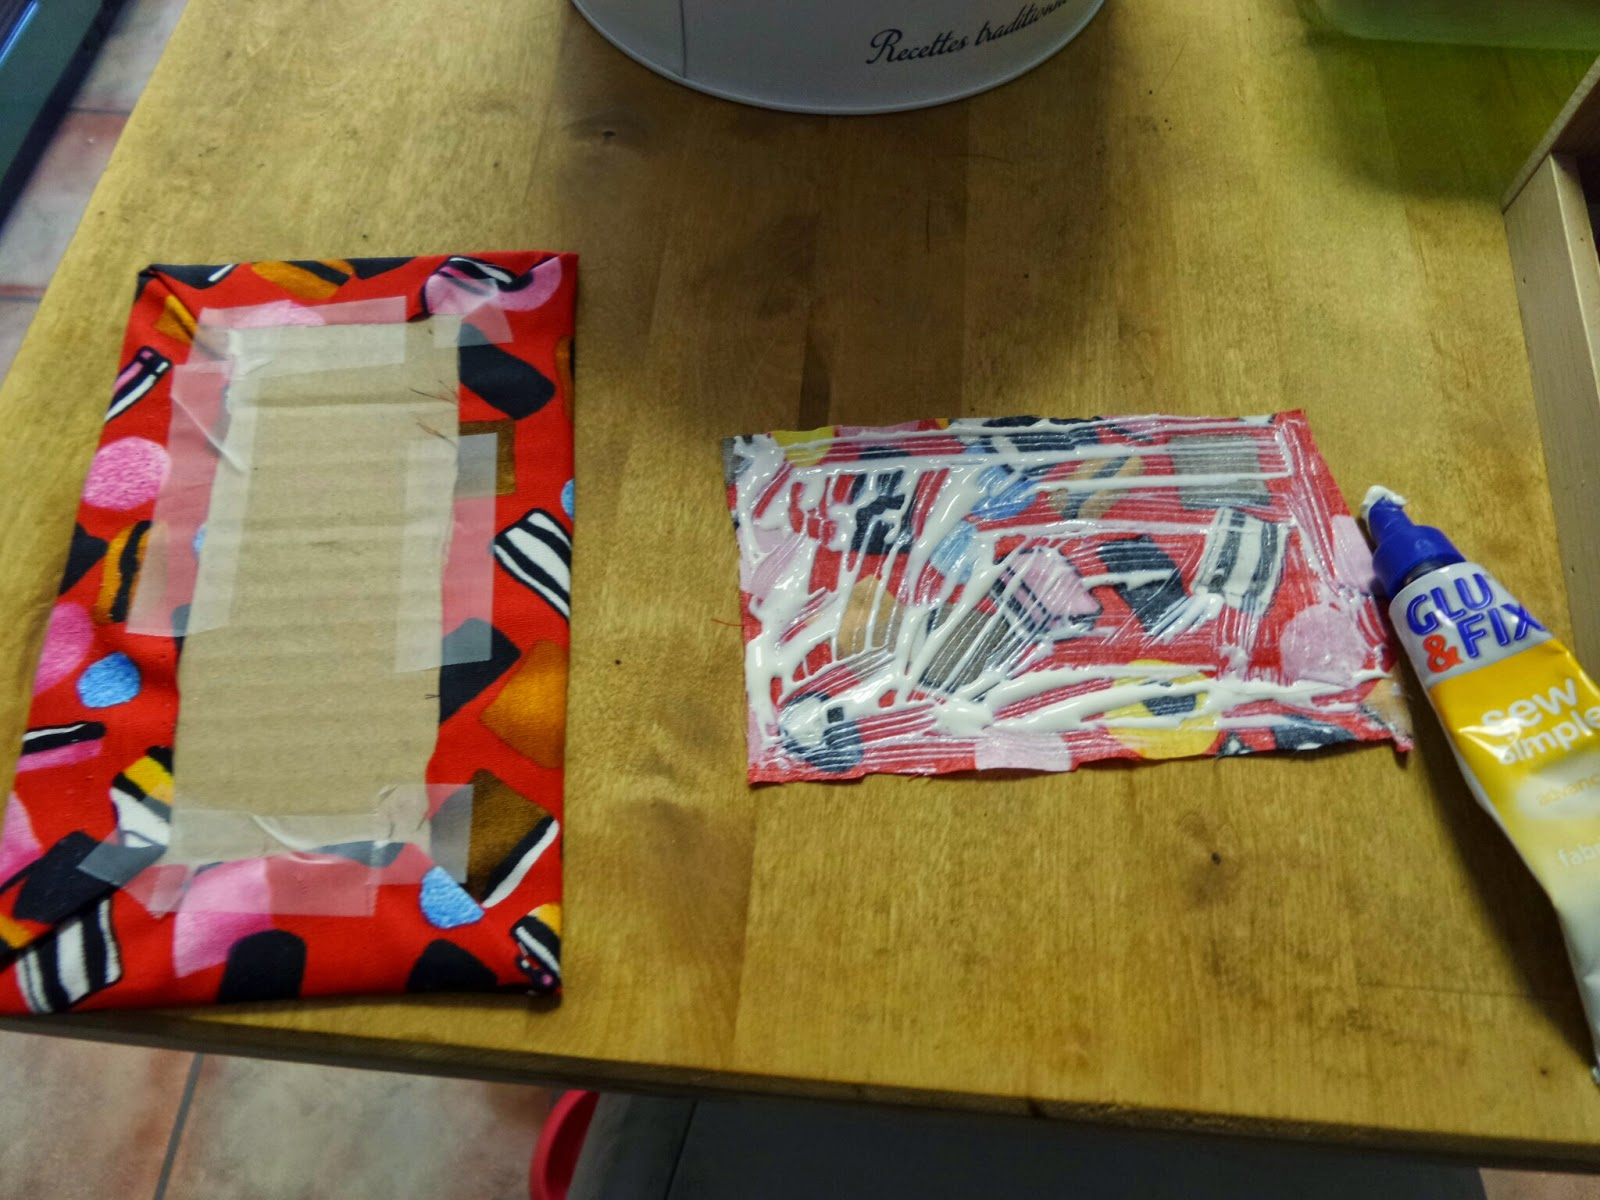 A Fabric Milkman's Wallet being made using Bostik's Sew Simple